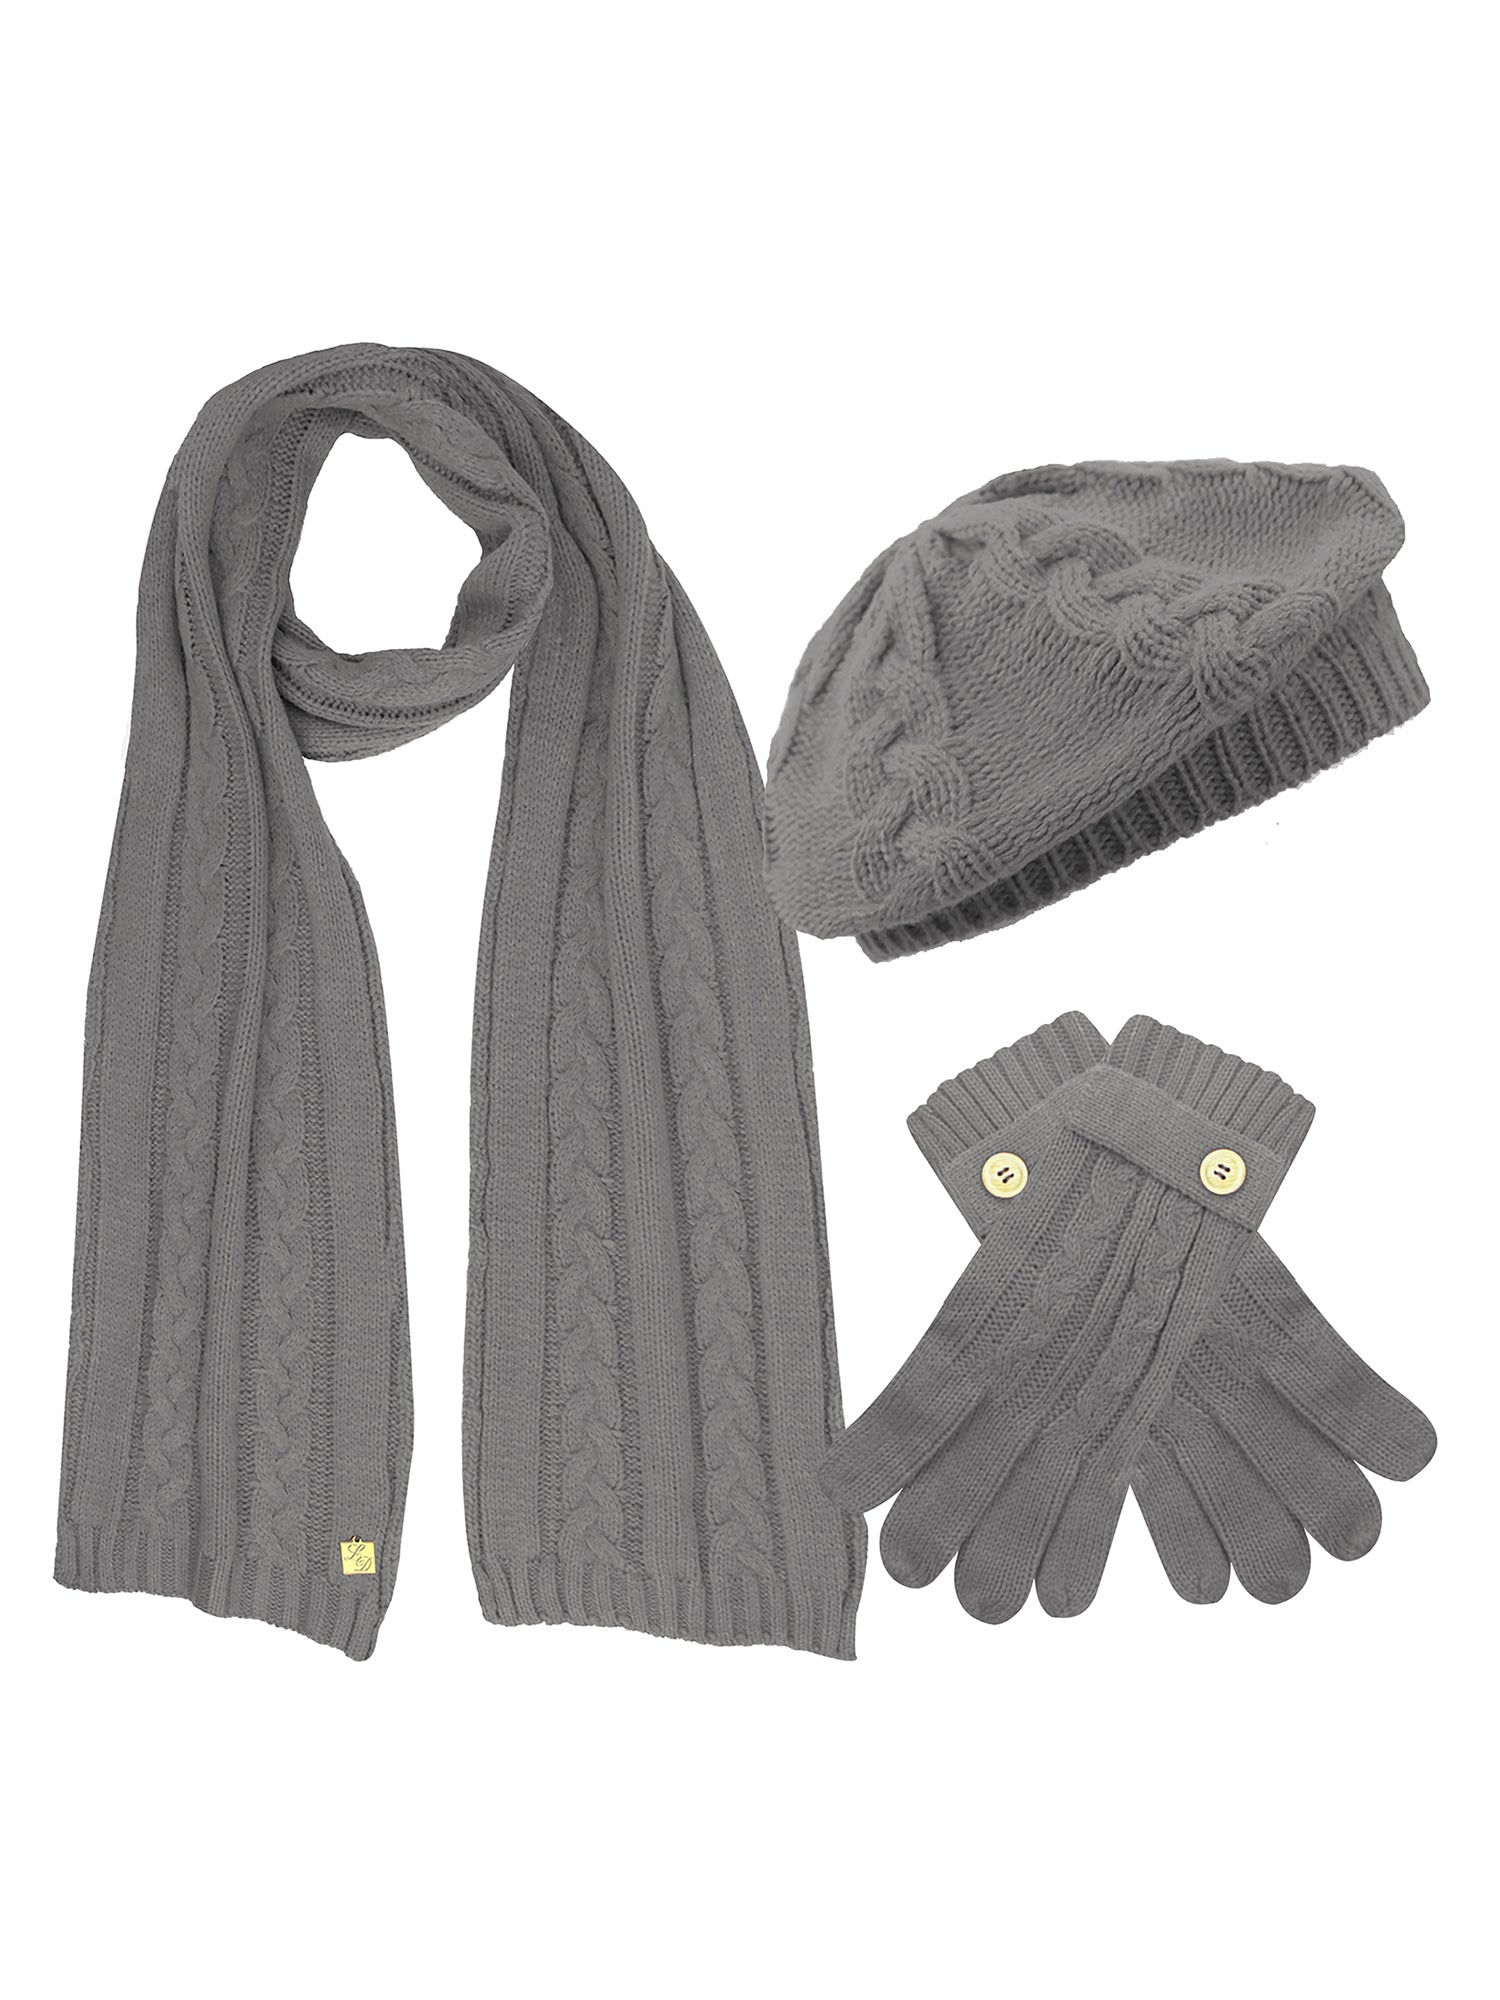 Cable Knit Beret Hat Scarf & Glove Matching 3 Piece Set Set